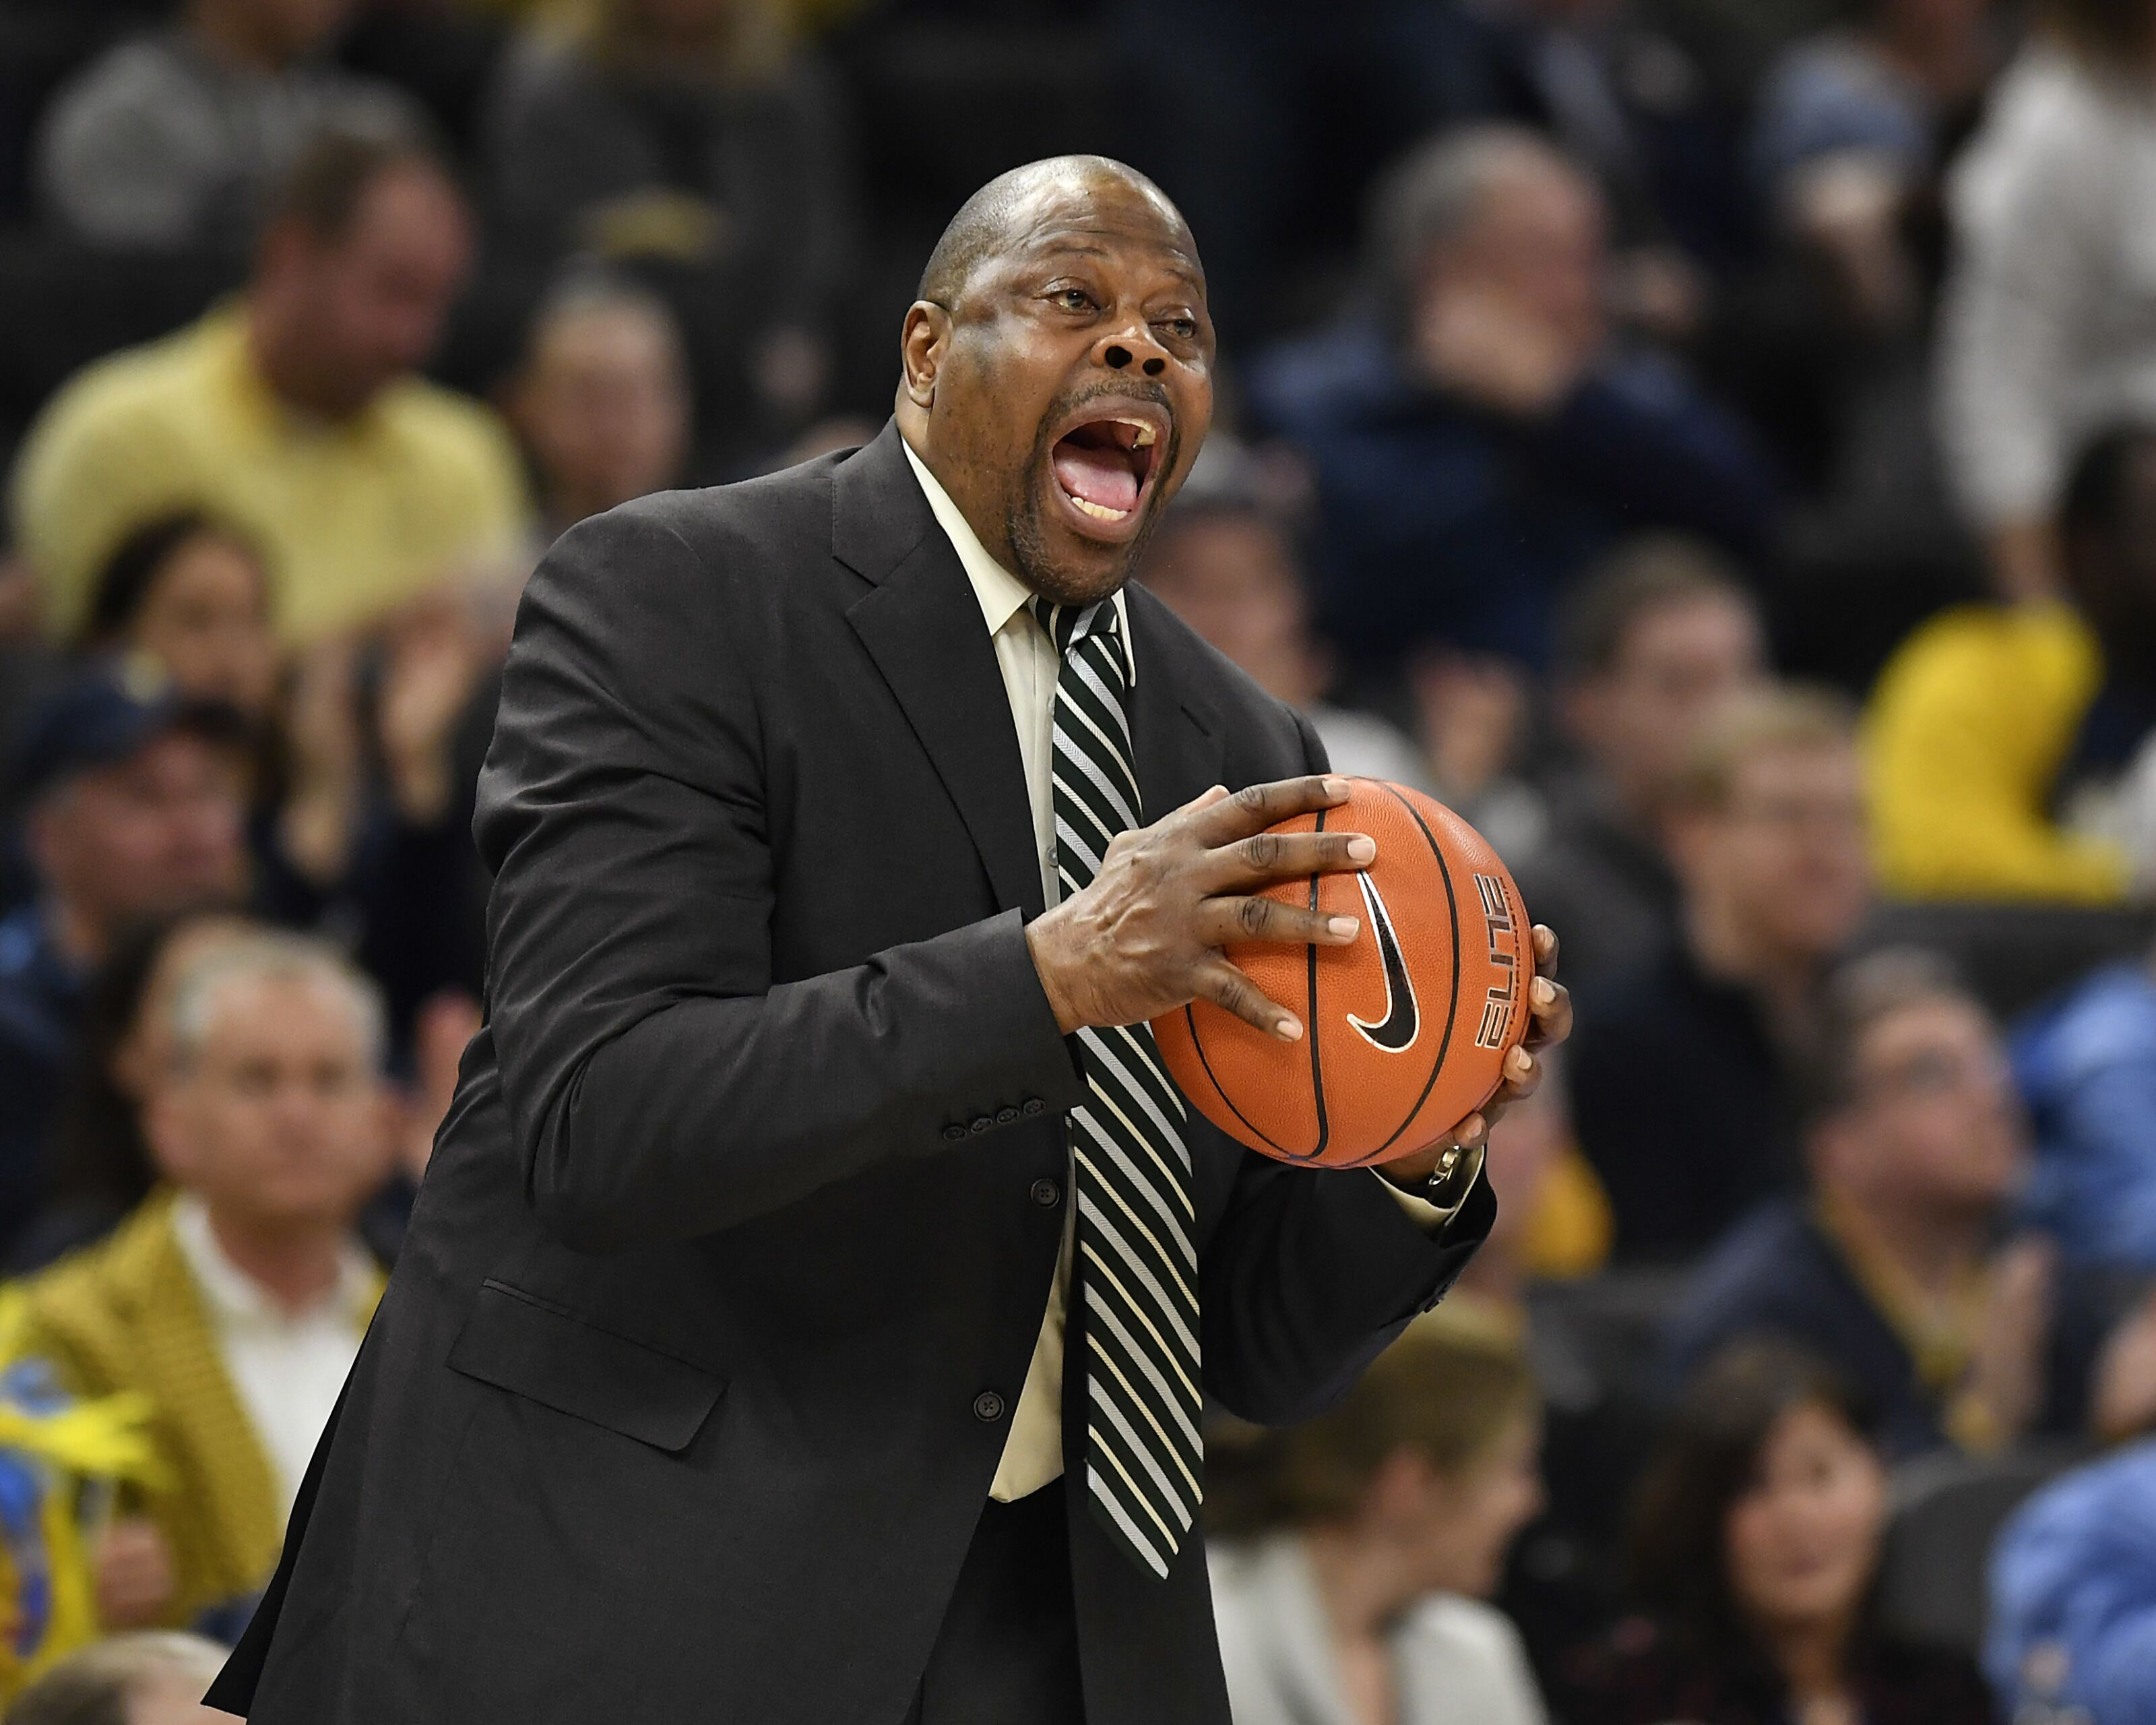 NCAA Basketball: 5 coaches who are on the hot seat for 2019-20 season